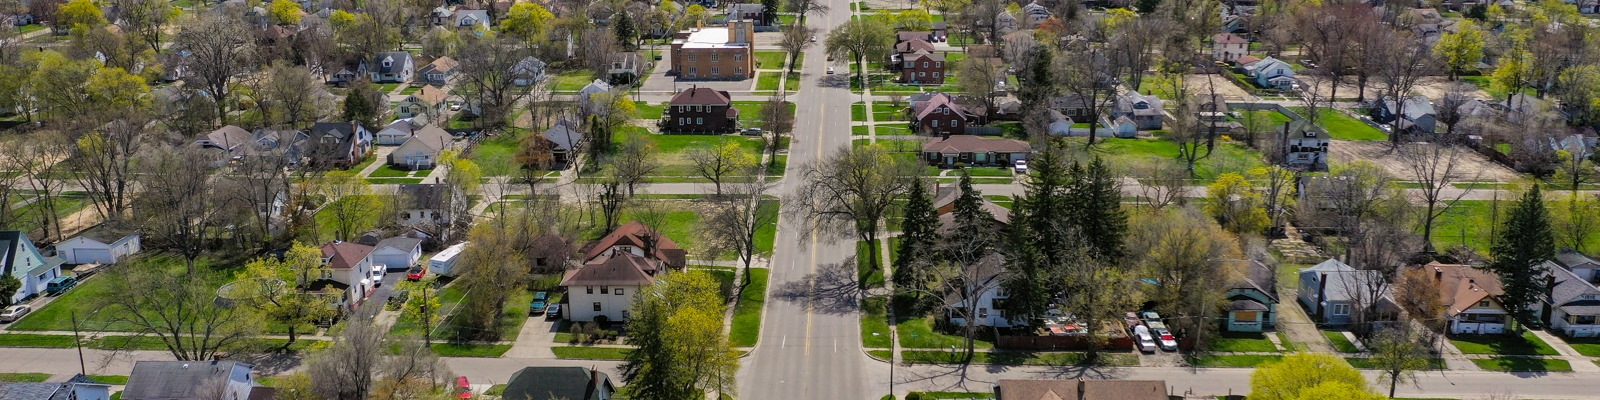 Spring is coming into bloom across Flint neighborhoods. This view from above shows Martin Luther King Avenue near Pasadena.